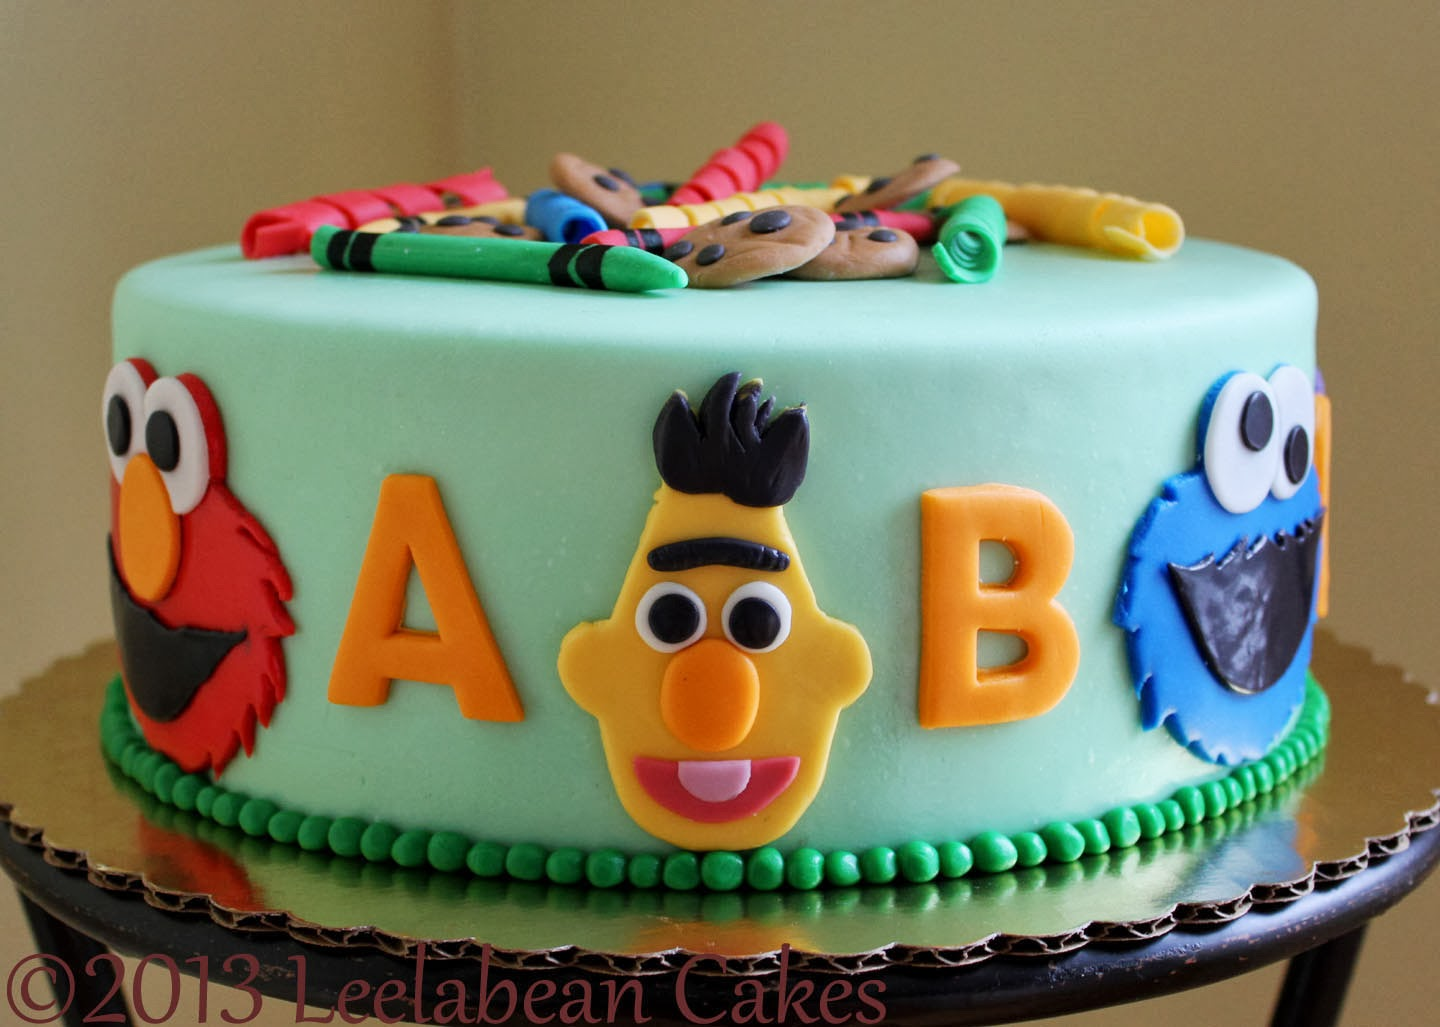 Leelabean Cakes Celebration Cakes Sesame Street Party